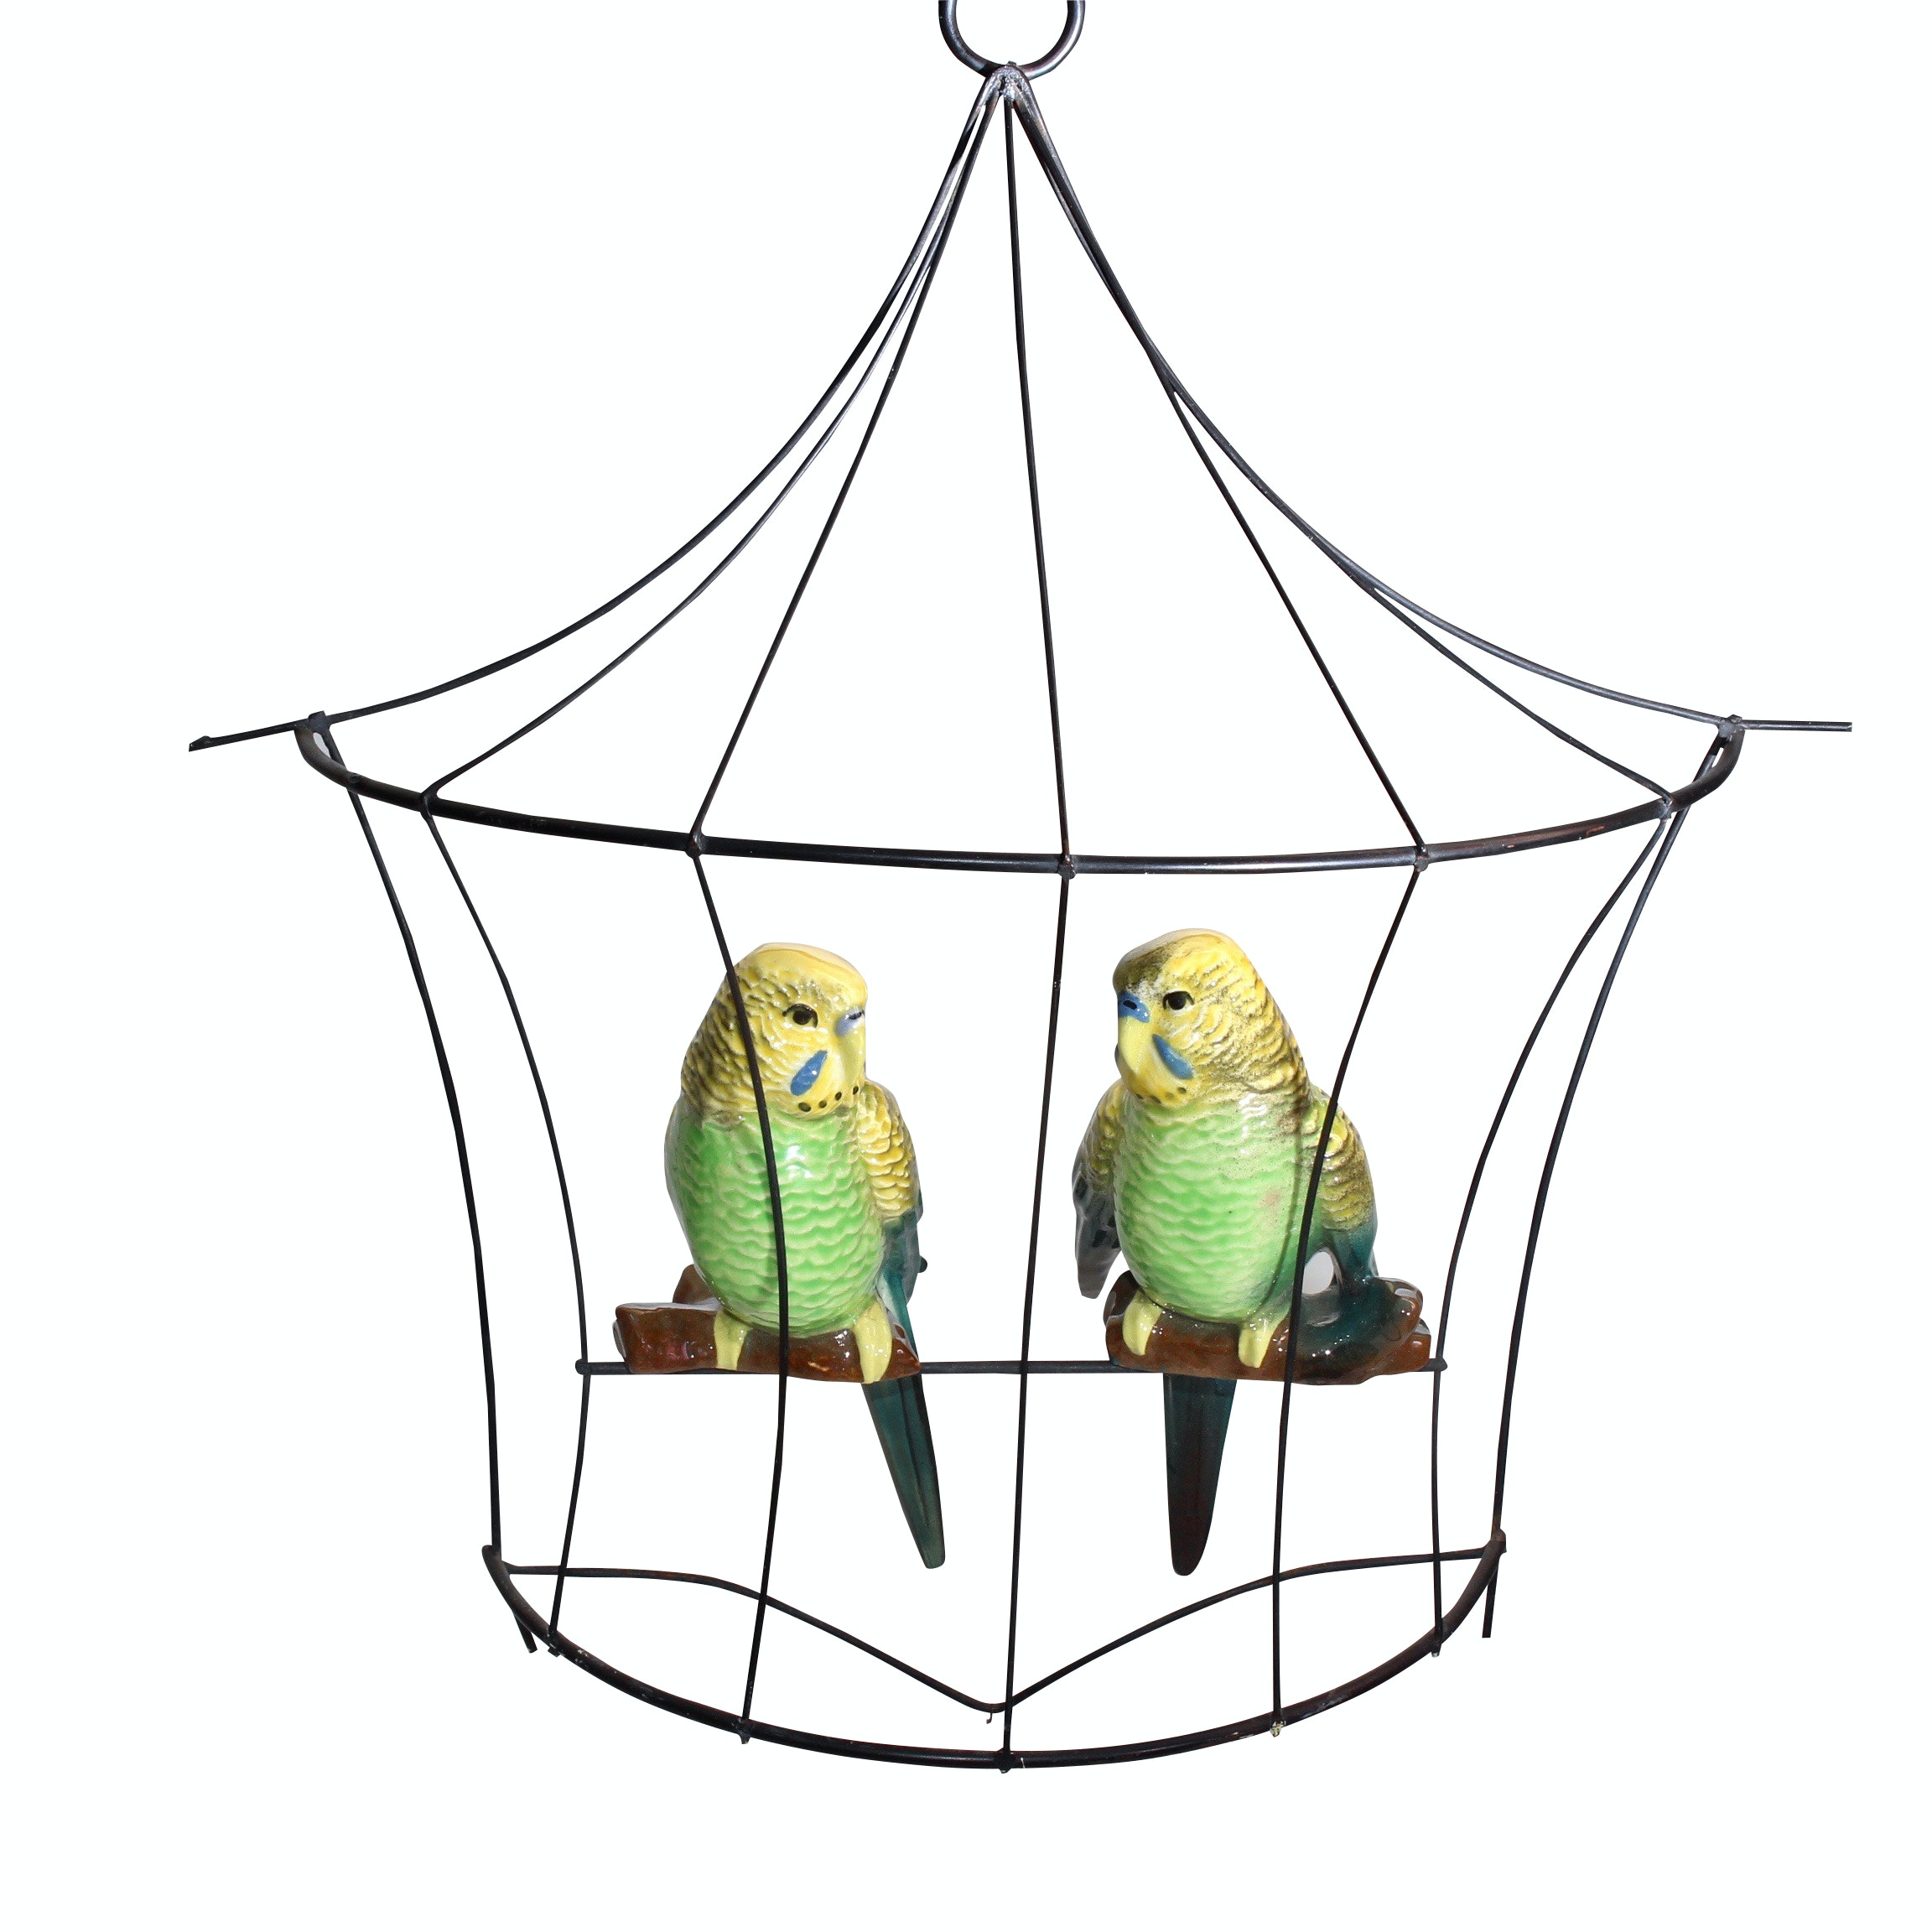 Ceramic Arts Studio Parrot Figurines in Mounted Cage